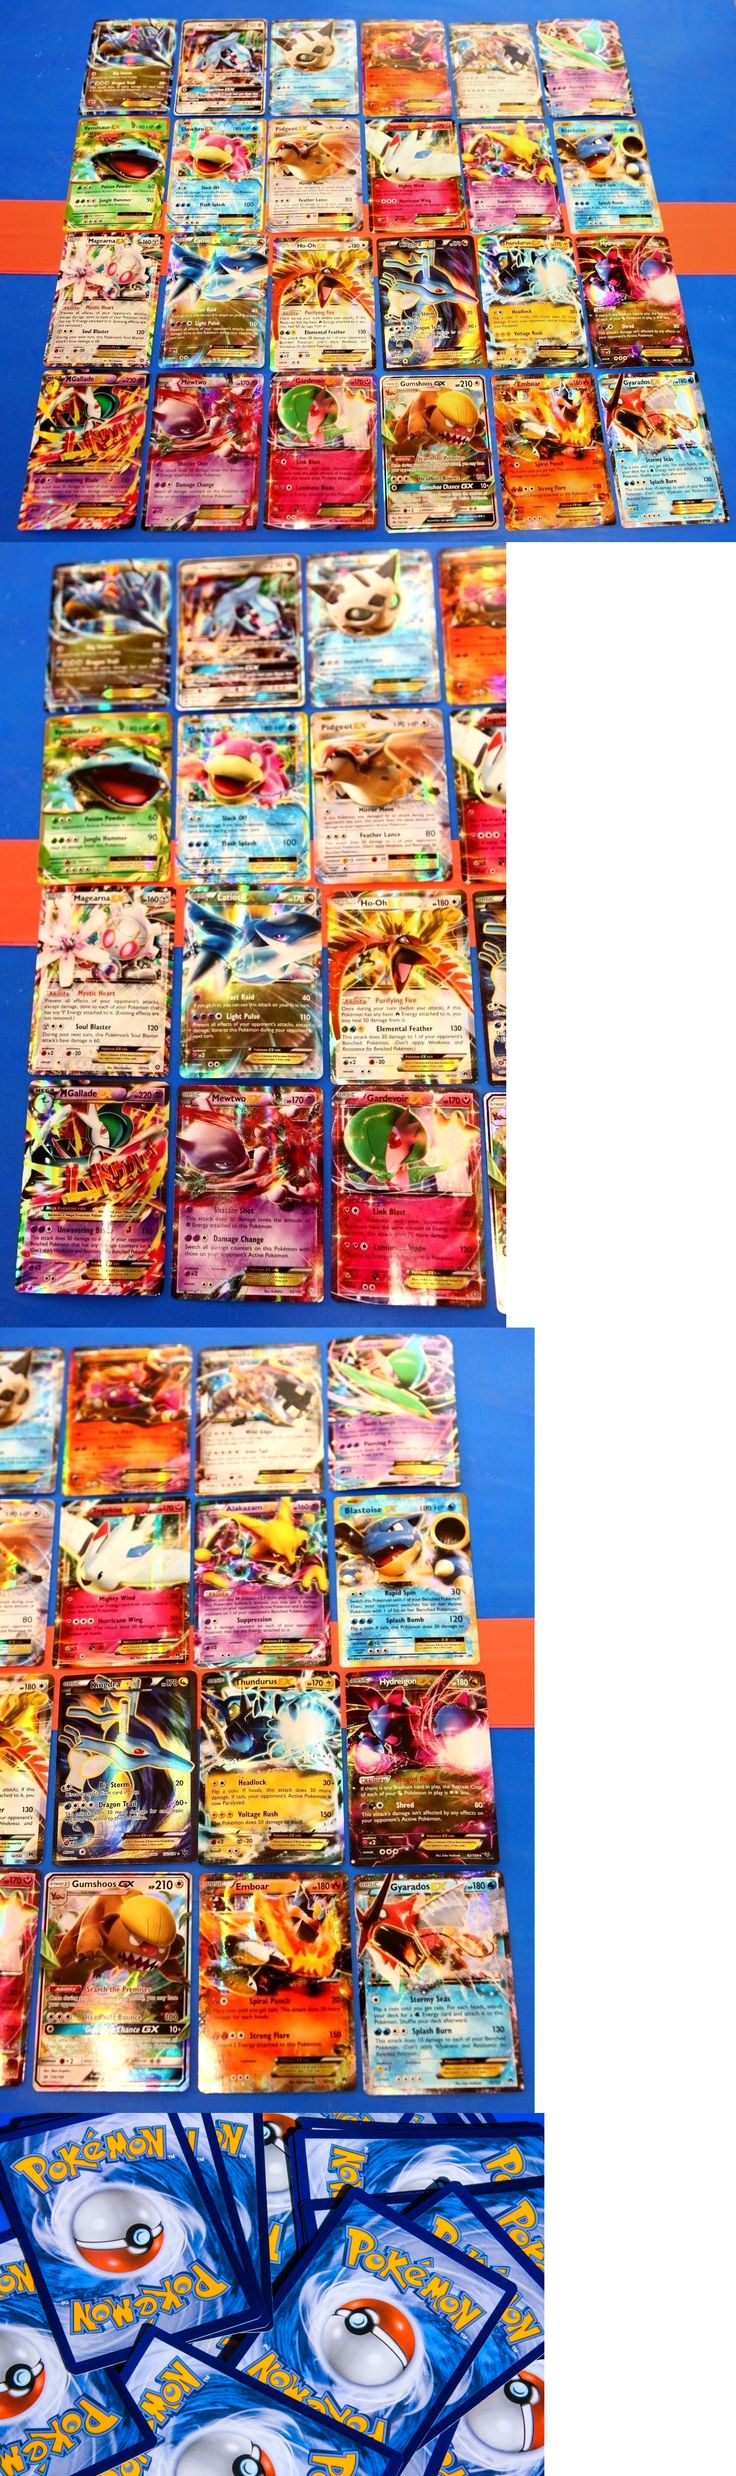 Pok mon Mixed Card Lots 104049: Pokemon 24 Card Lot All Ex Gx Cards Guaranteed Authentic Pokemon Ultra Rares! -> BUY IT NOW ONLY: $95.95 on eBay!